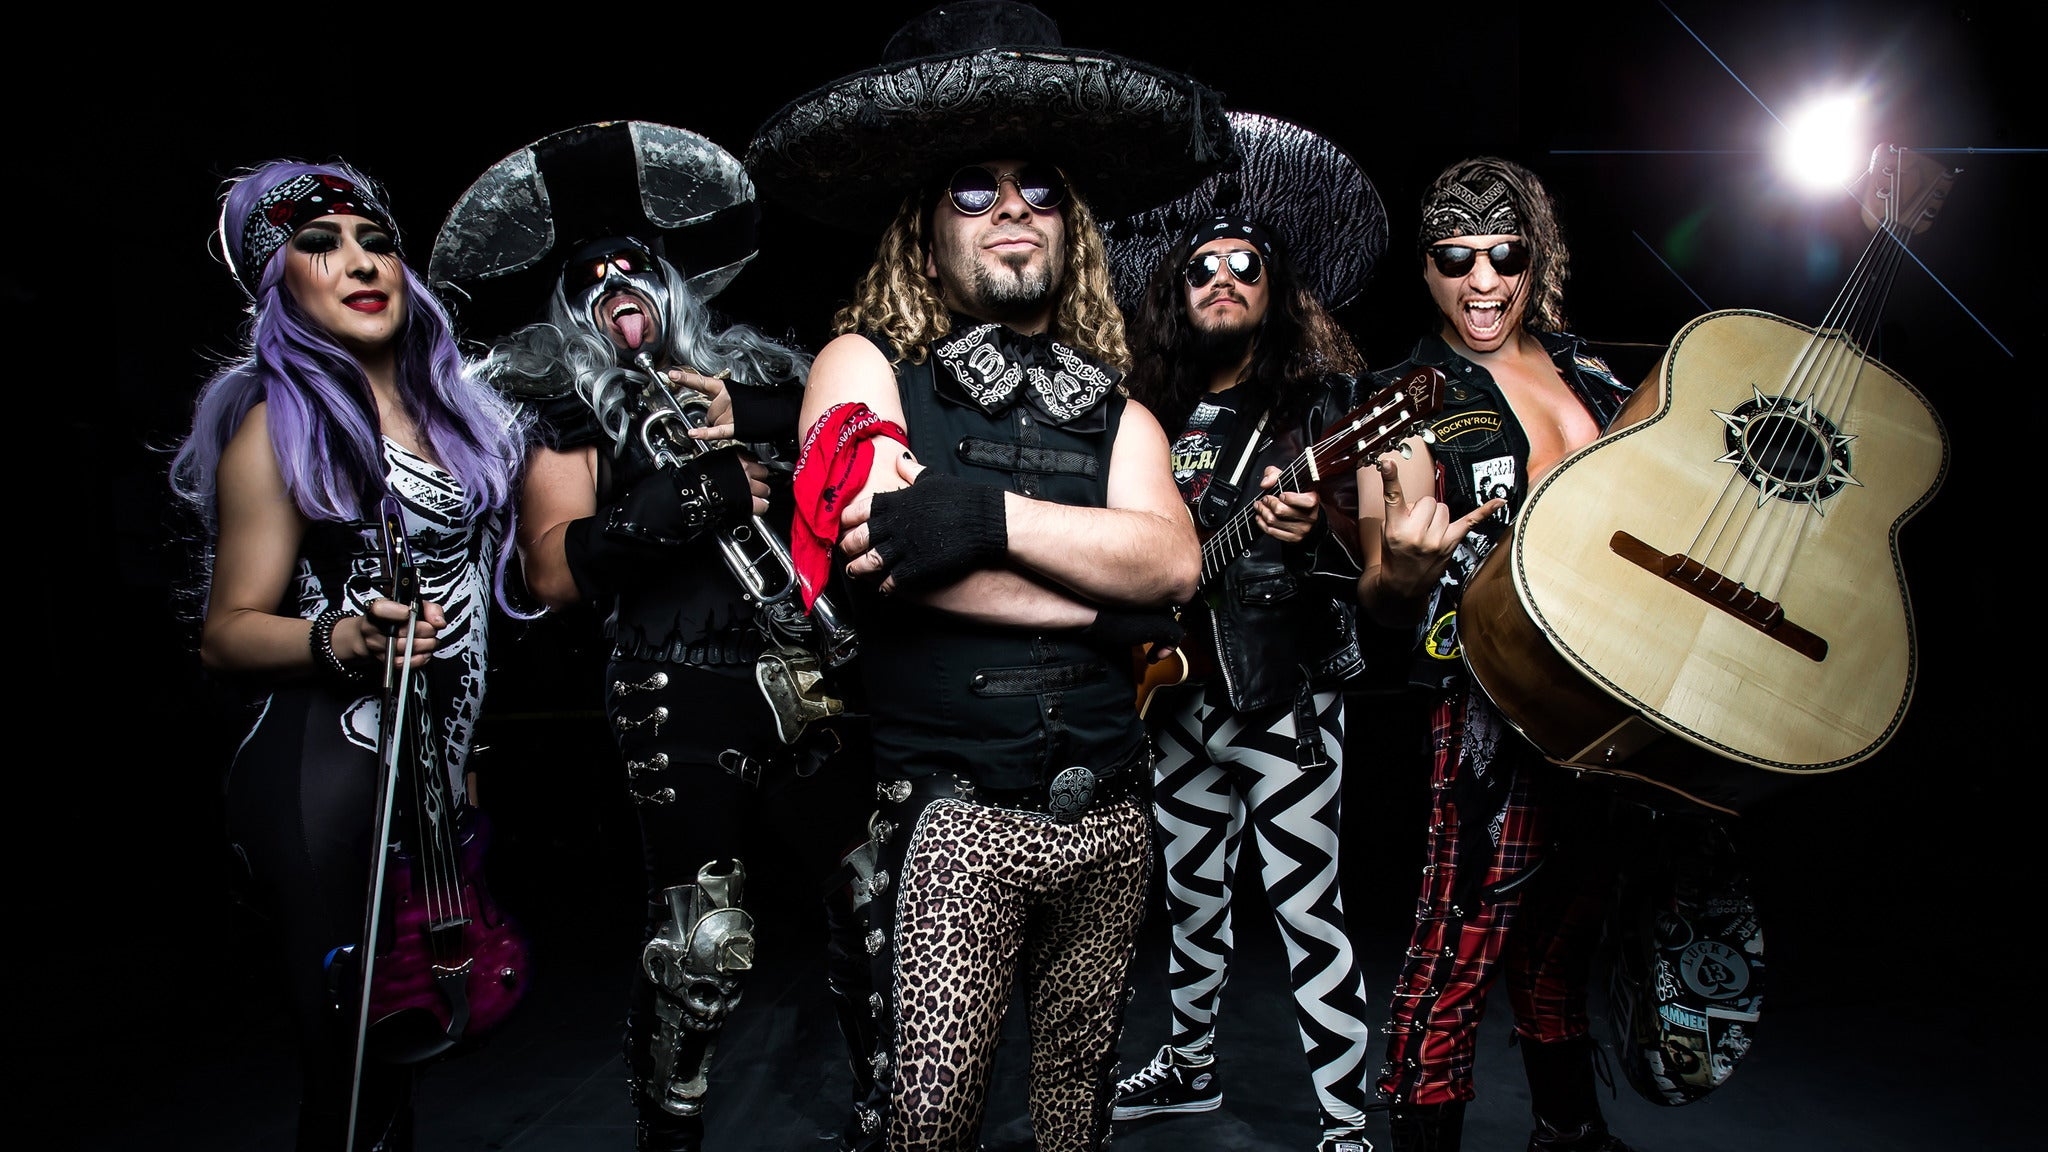 Metalachi at Siren